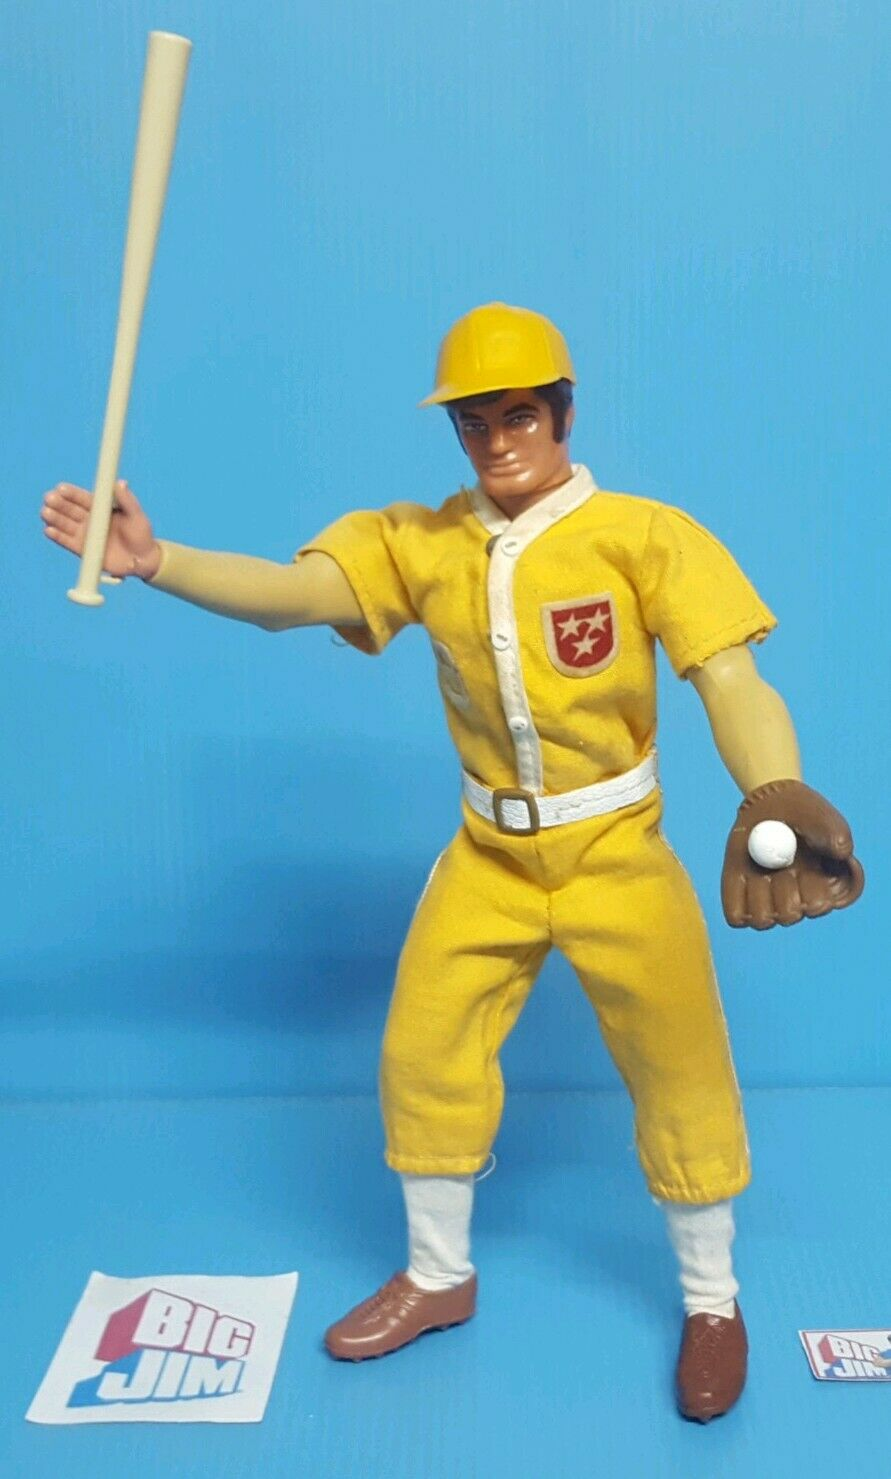 groß Jim,    BASEBALL USA ALL Stern Gelb     Wirkung Joe, mattel